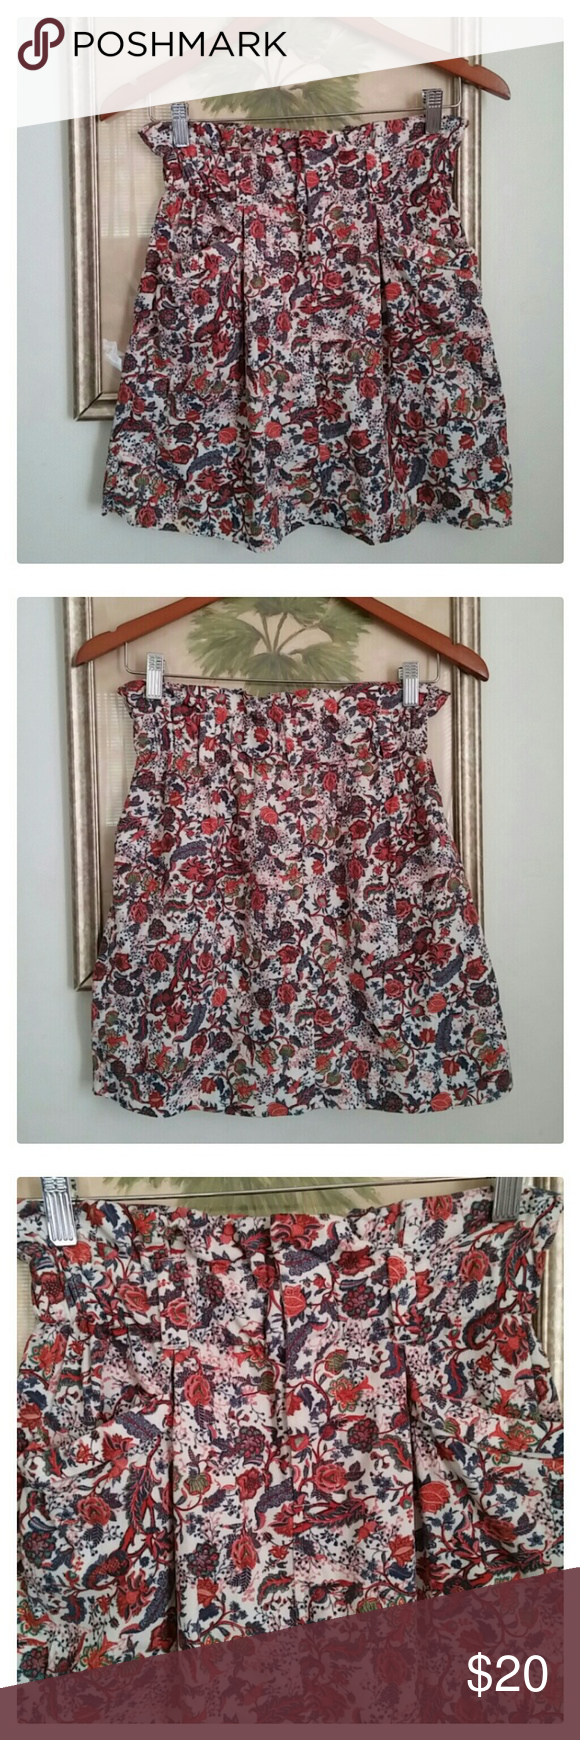 0573b4d84b Zara floral corduroy skirt Elastic waistband with belt loop Double front  pockets 100% Cotton Zara Skirts